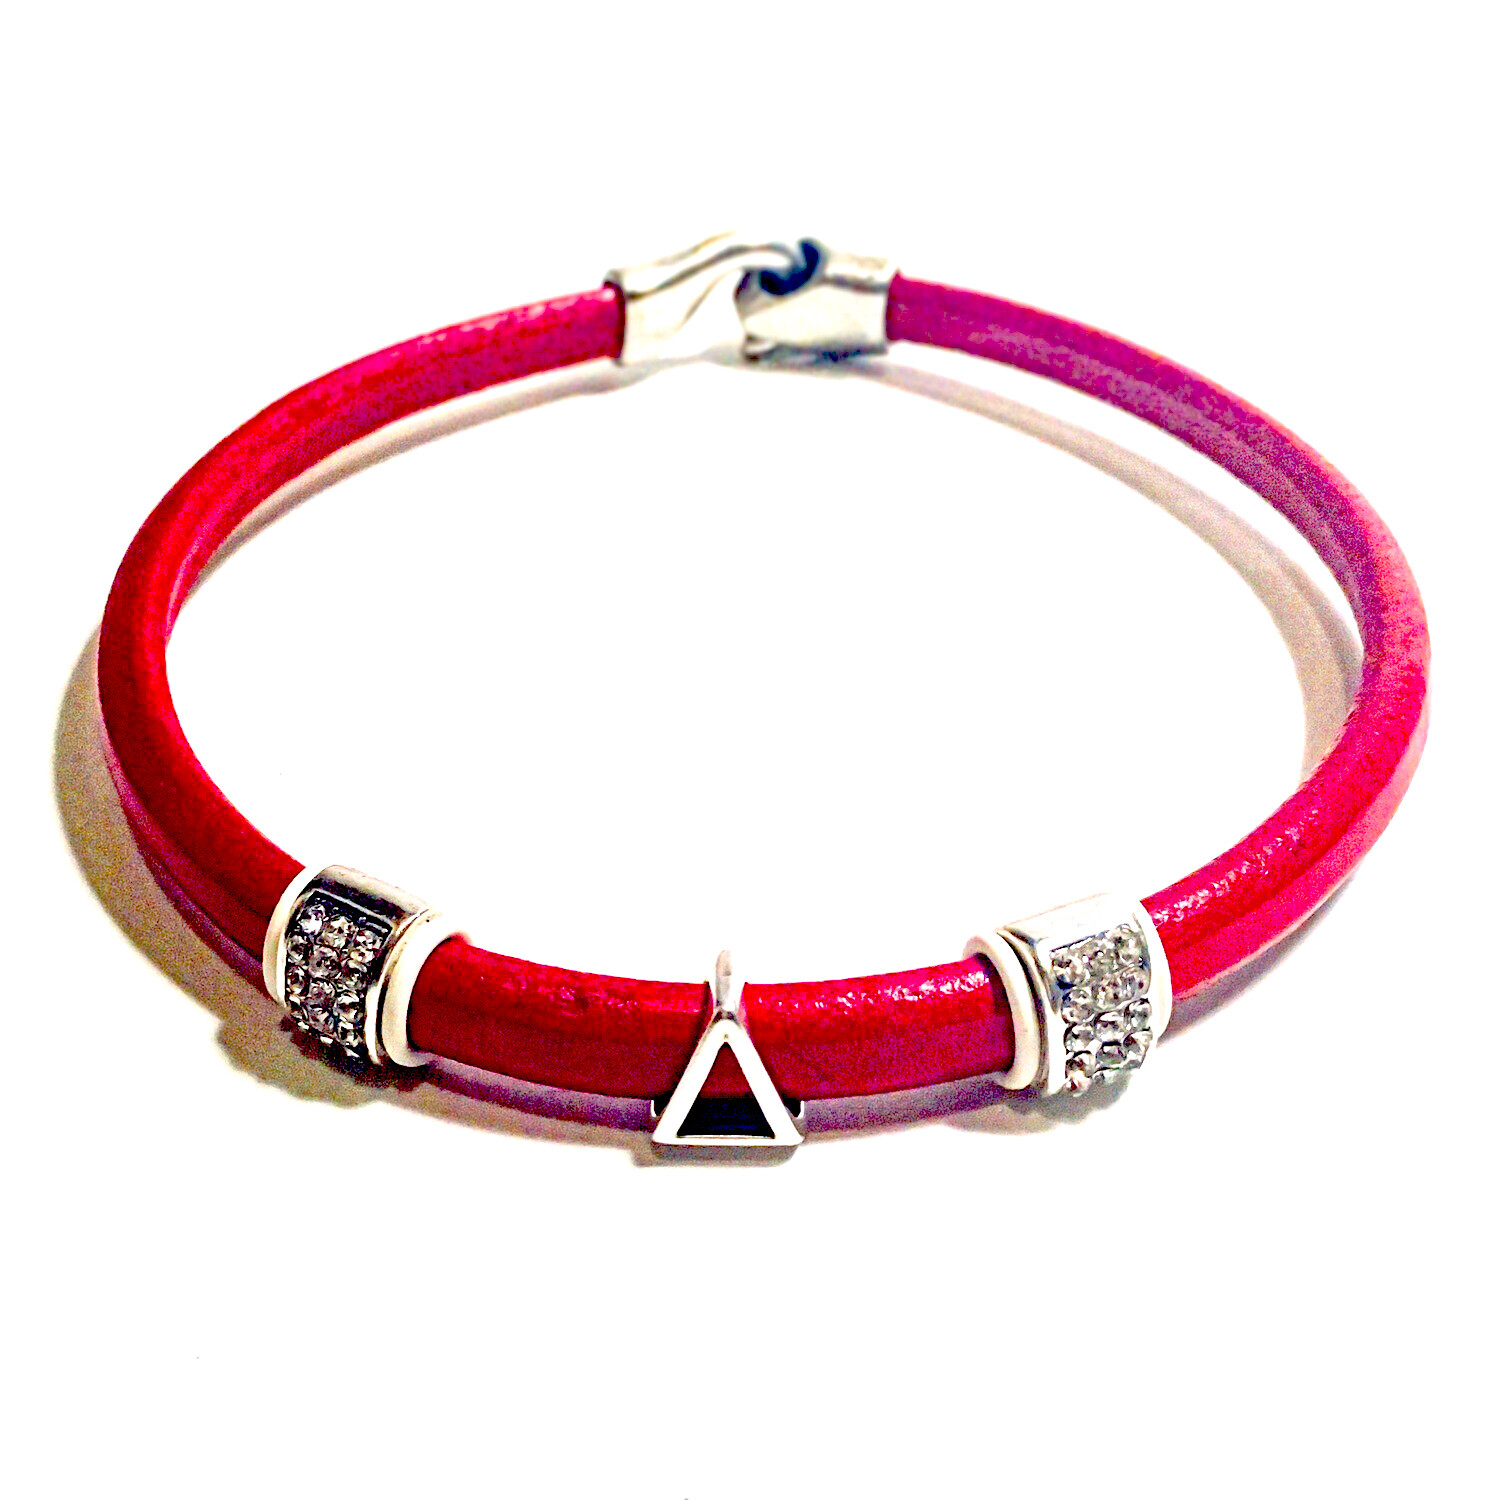 Necklace | Red Leather Pyramid Chocker With Bling Classy Creations Originals